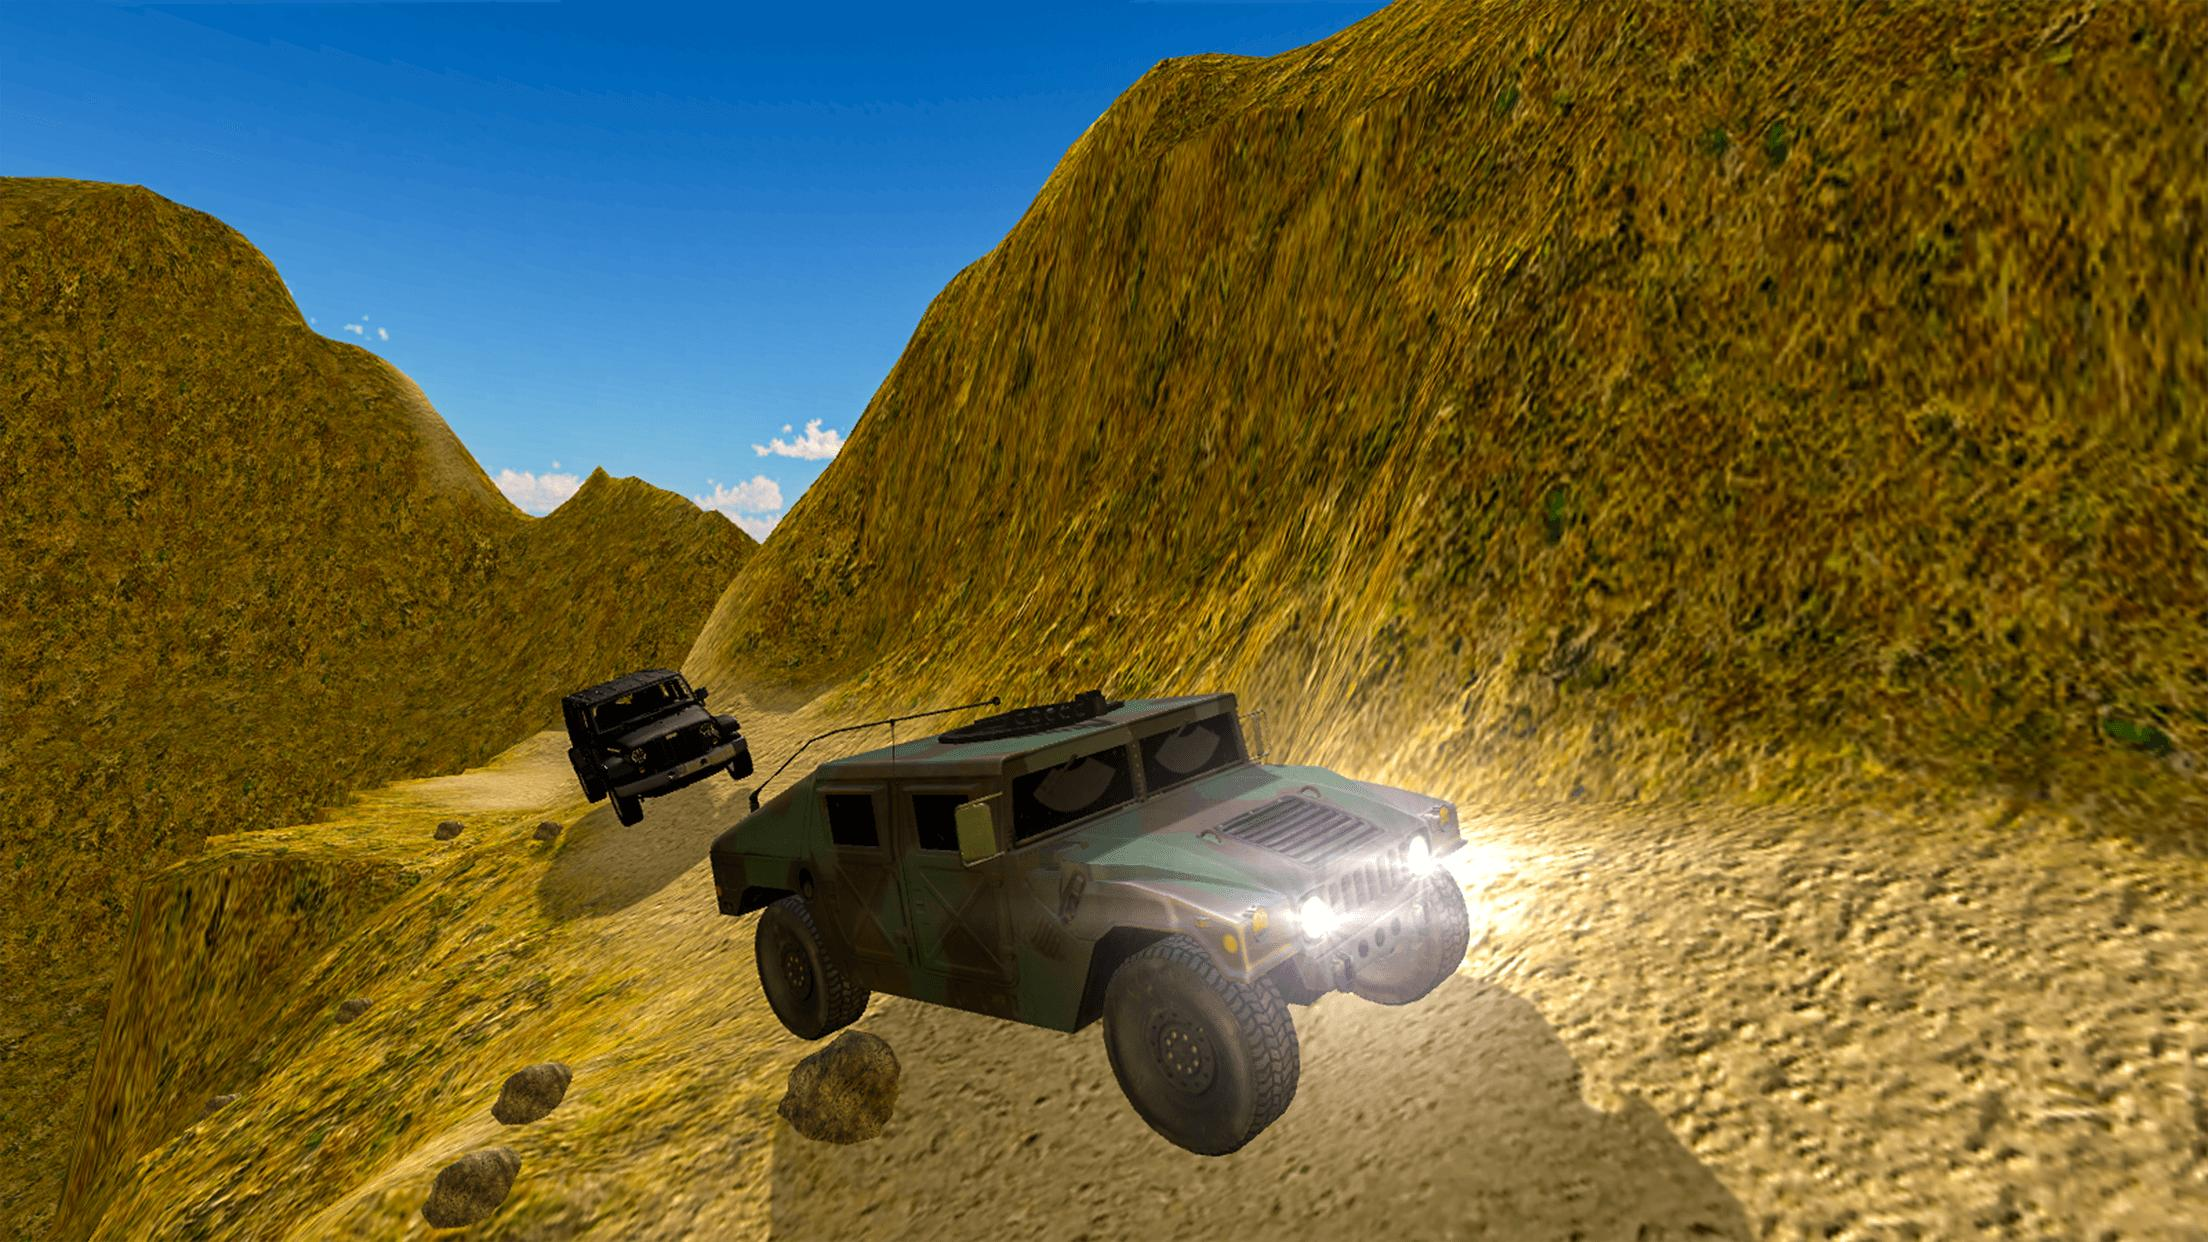 Jeep Information And Evolution Offroaders Com >> Android Icin Offroad Jeep Evolution Hard Driving Simulator 3d Apk